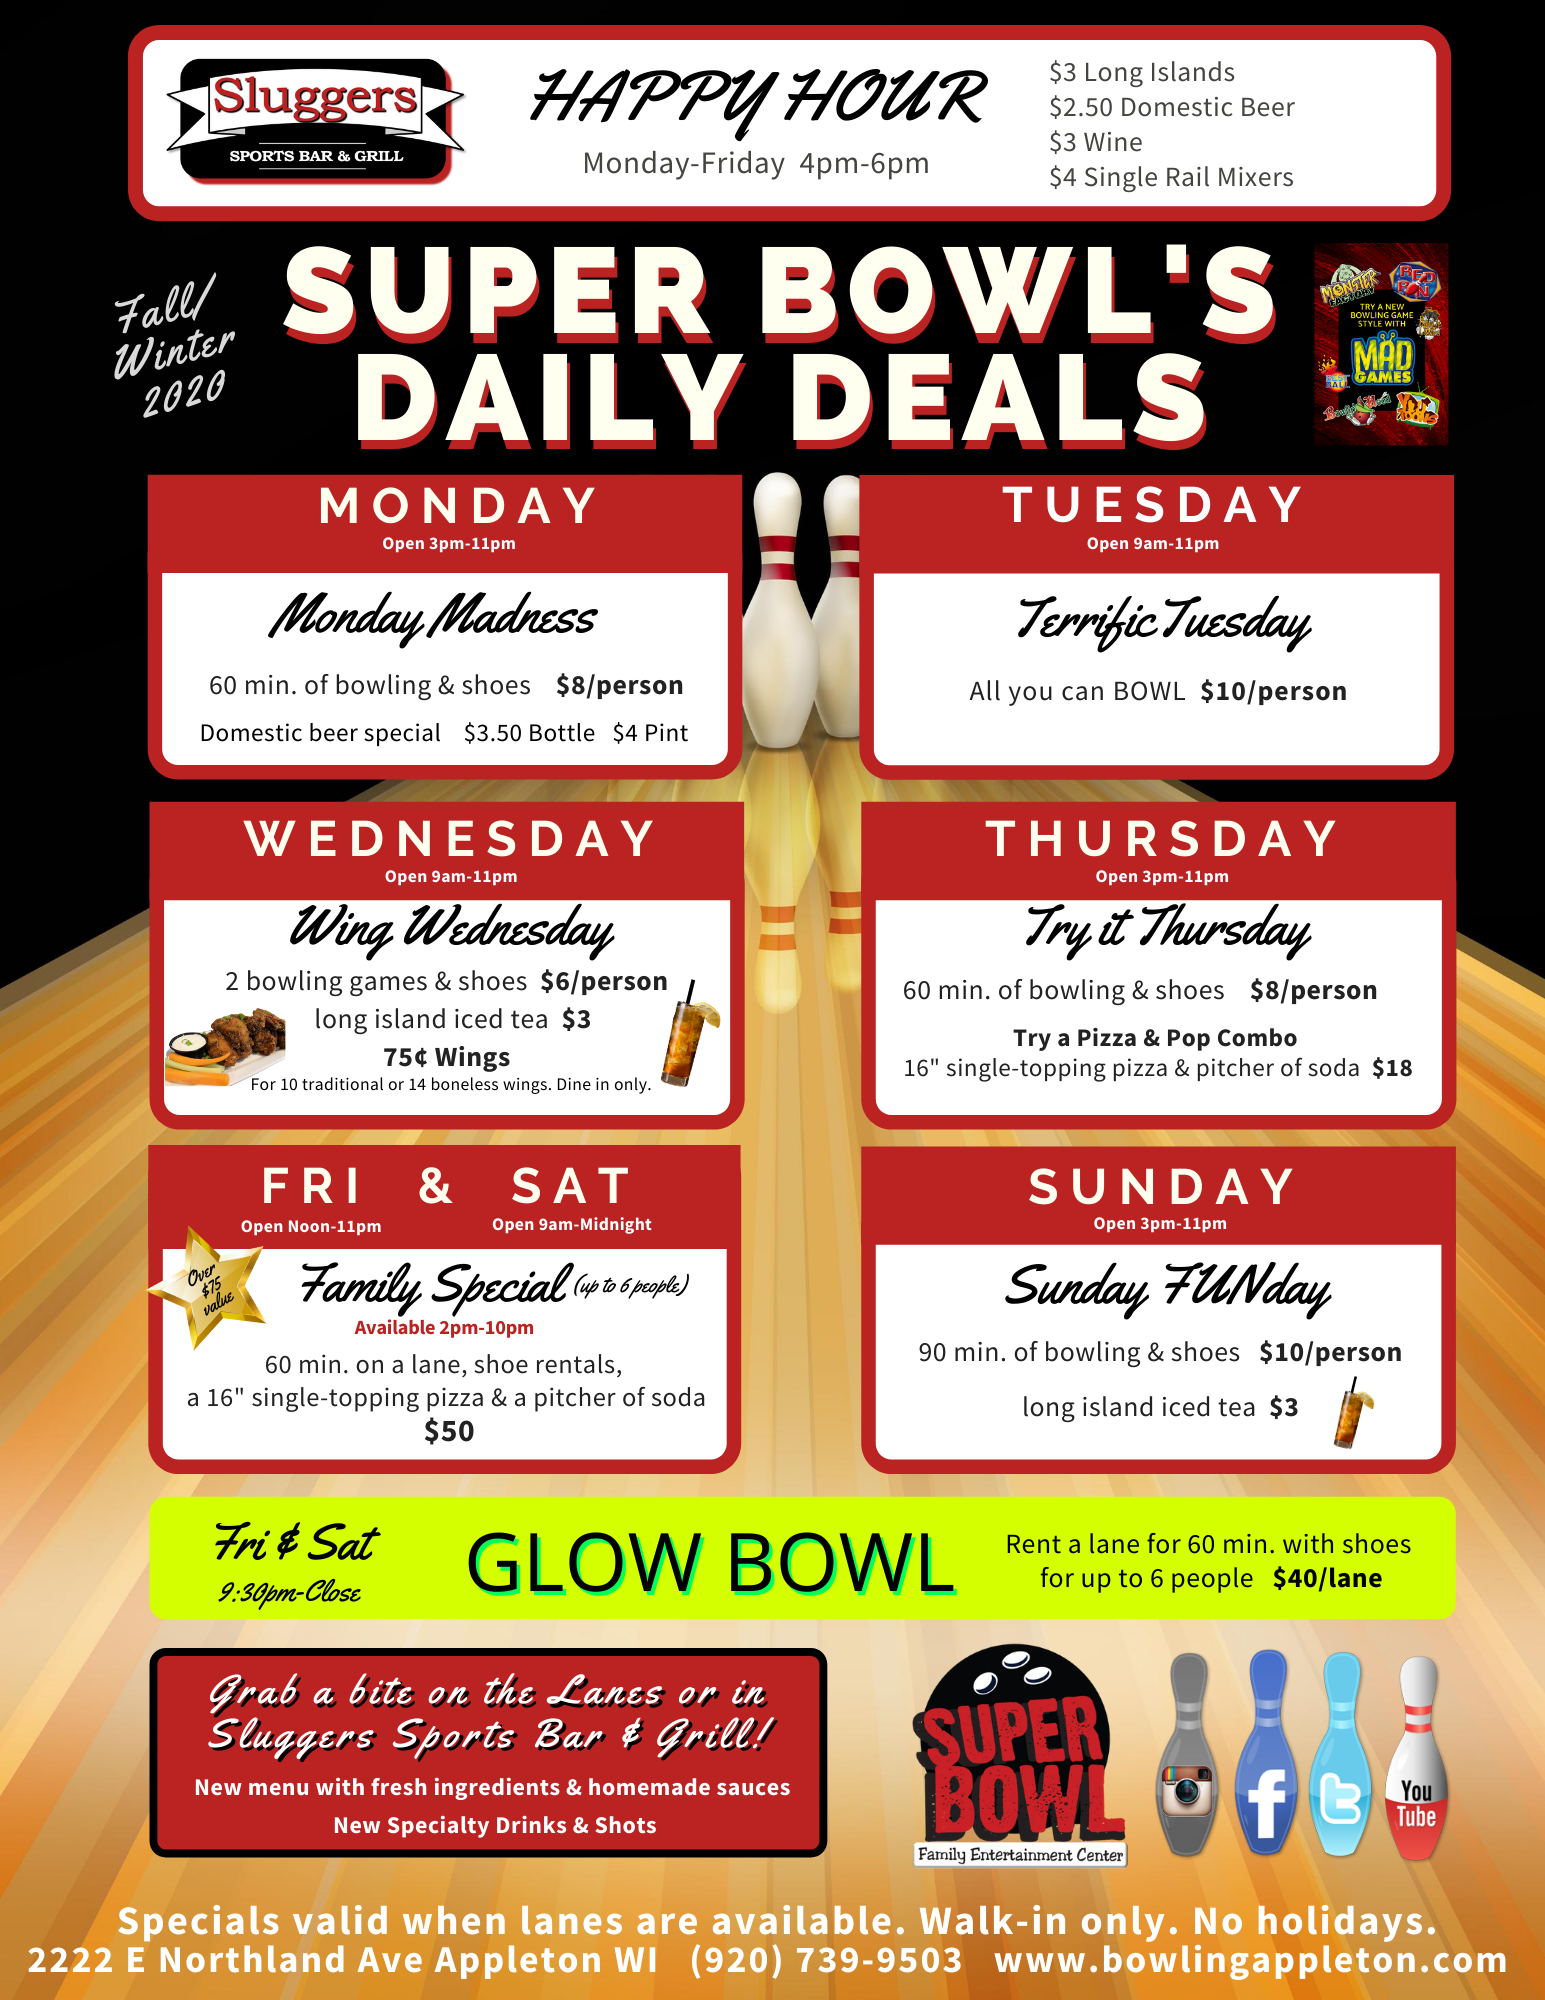 Super Bowl's Walk in Daily Deals | Fall 2020 Daily Deals | Open Bowling Deals | Fun things to do with Family | Appleton, WI